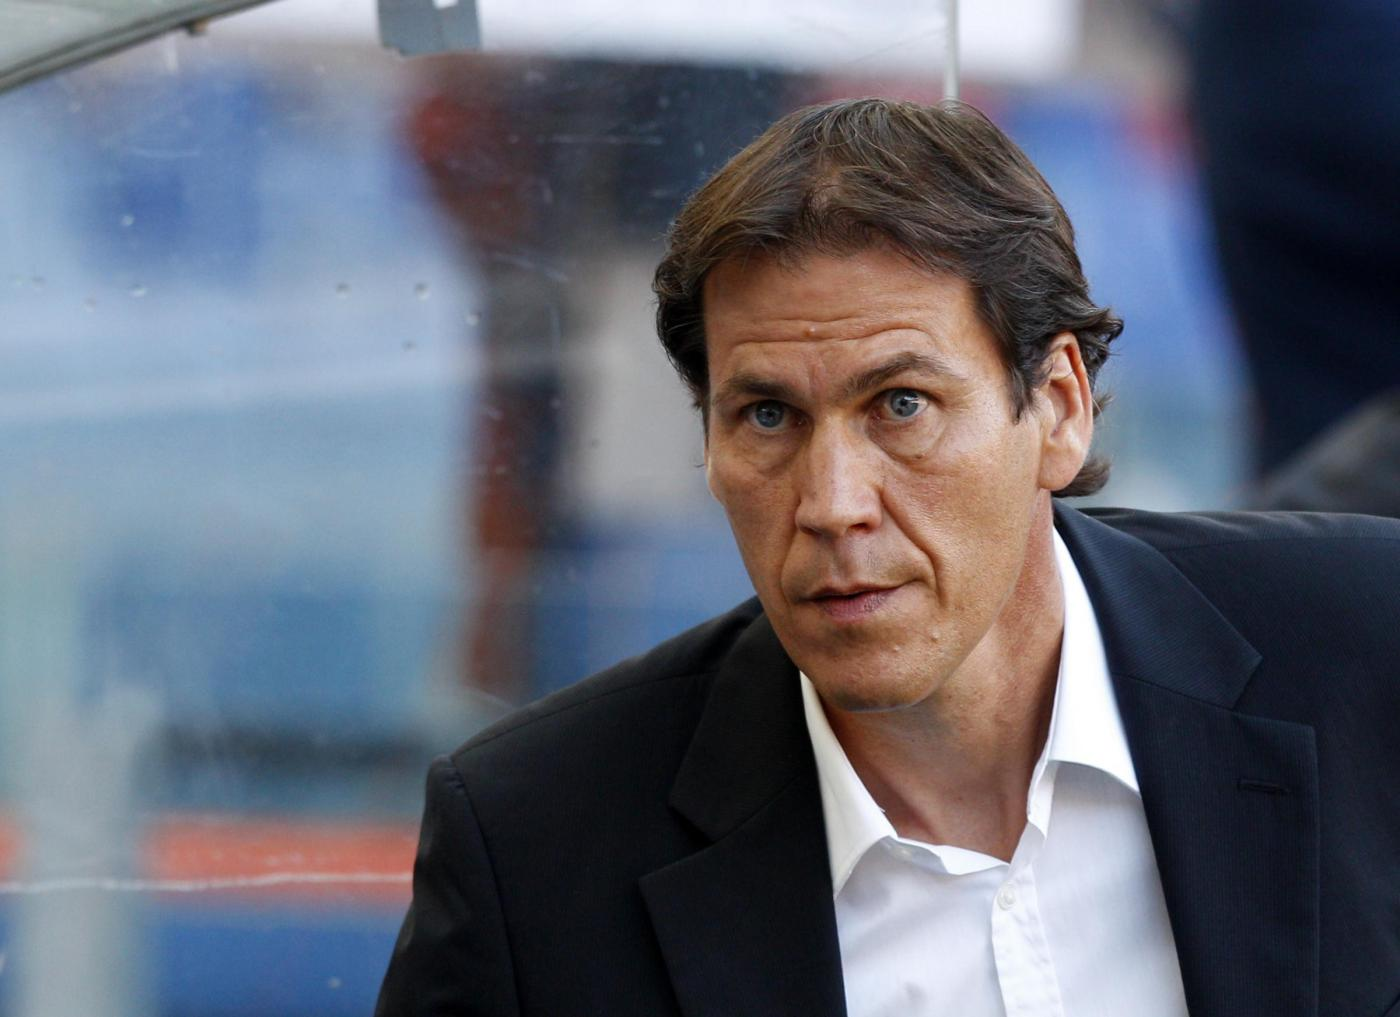 AS Roma coach Rudi Garcia, of France, waits for the kick-off of a Serie A soccer match between AS Roma and Hellas Verona, at Rome's Olympic stadium, Sunday, Sept. 1, 2013. (AP Photo/Riccardo De Luca)